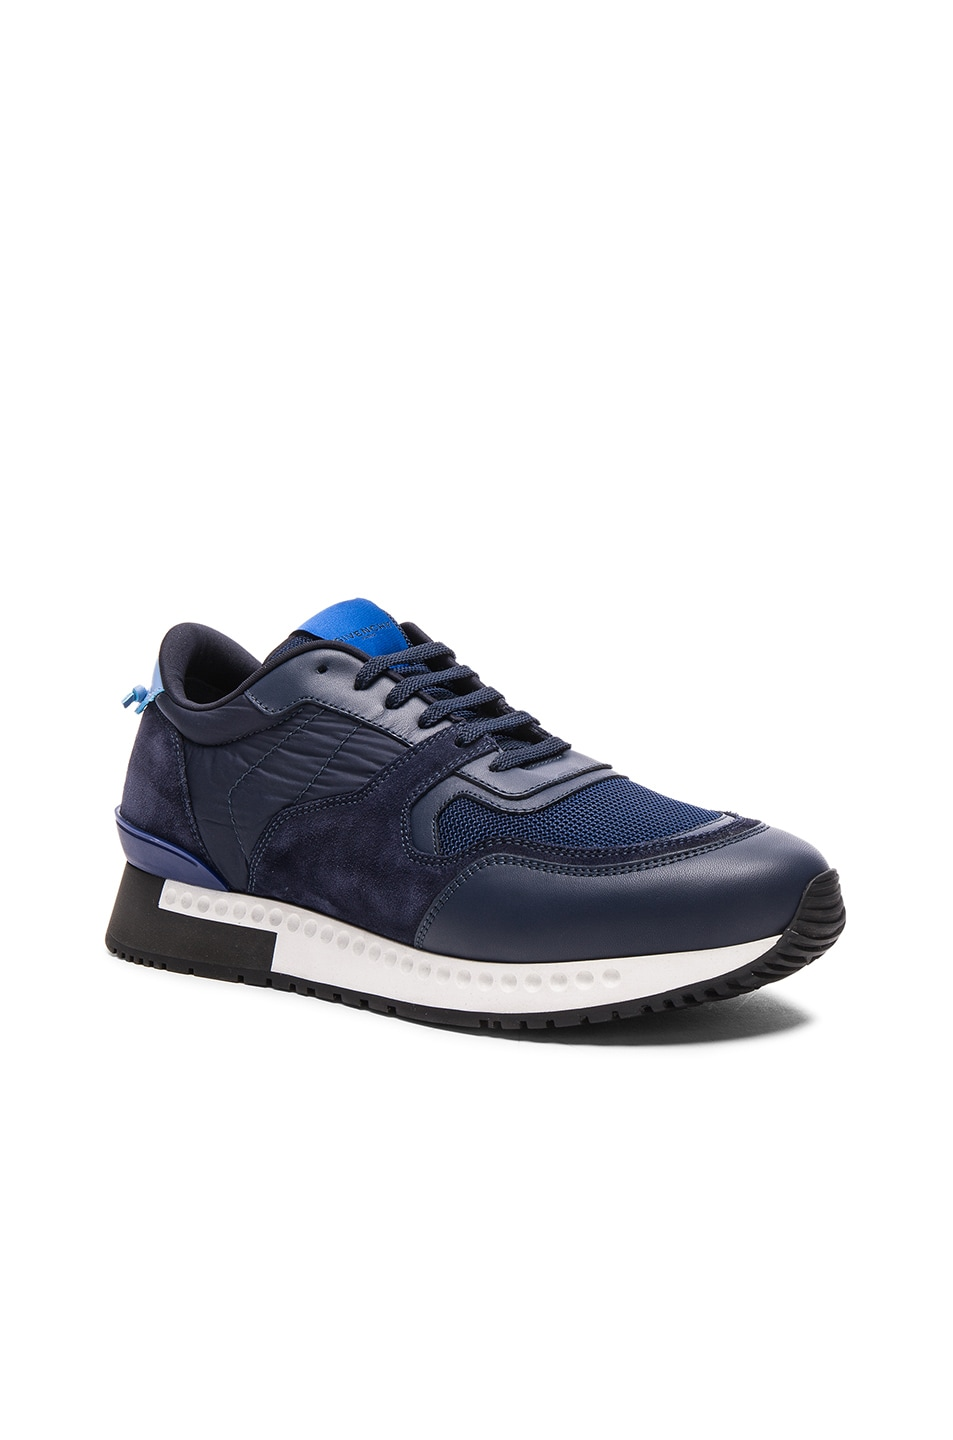 runner sneakers - Blue Givenchy sOMuYYHMW